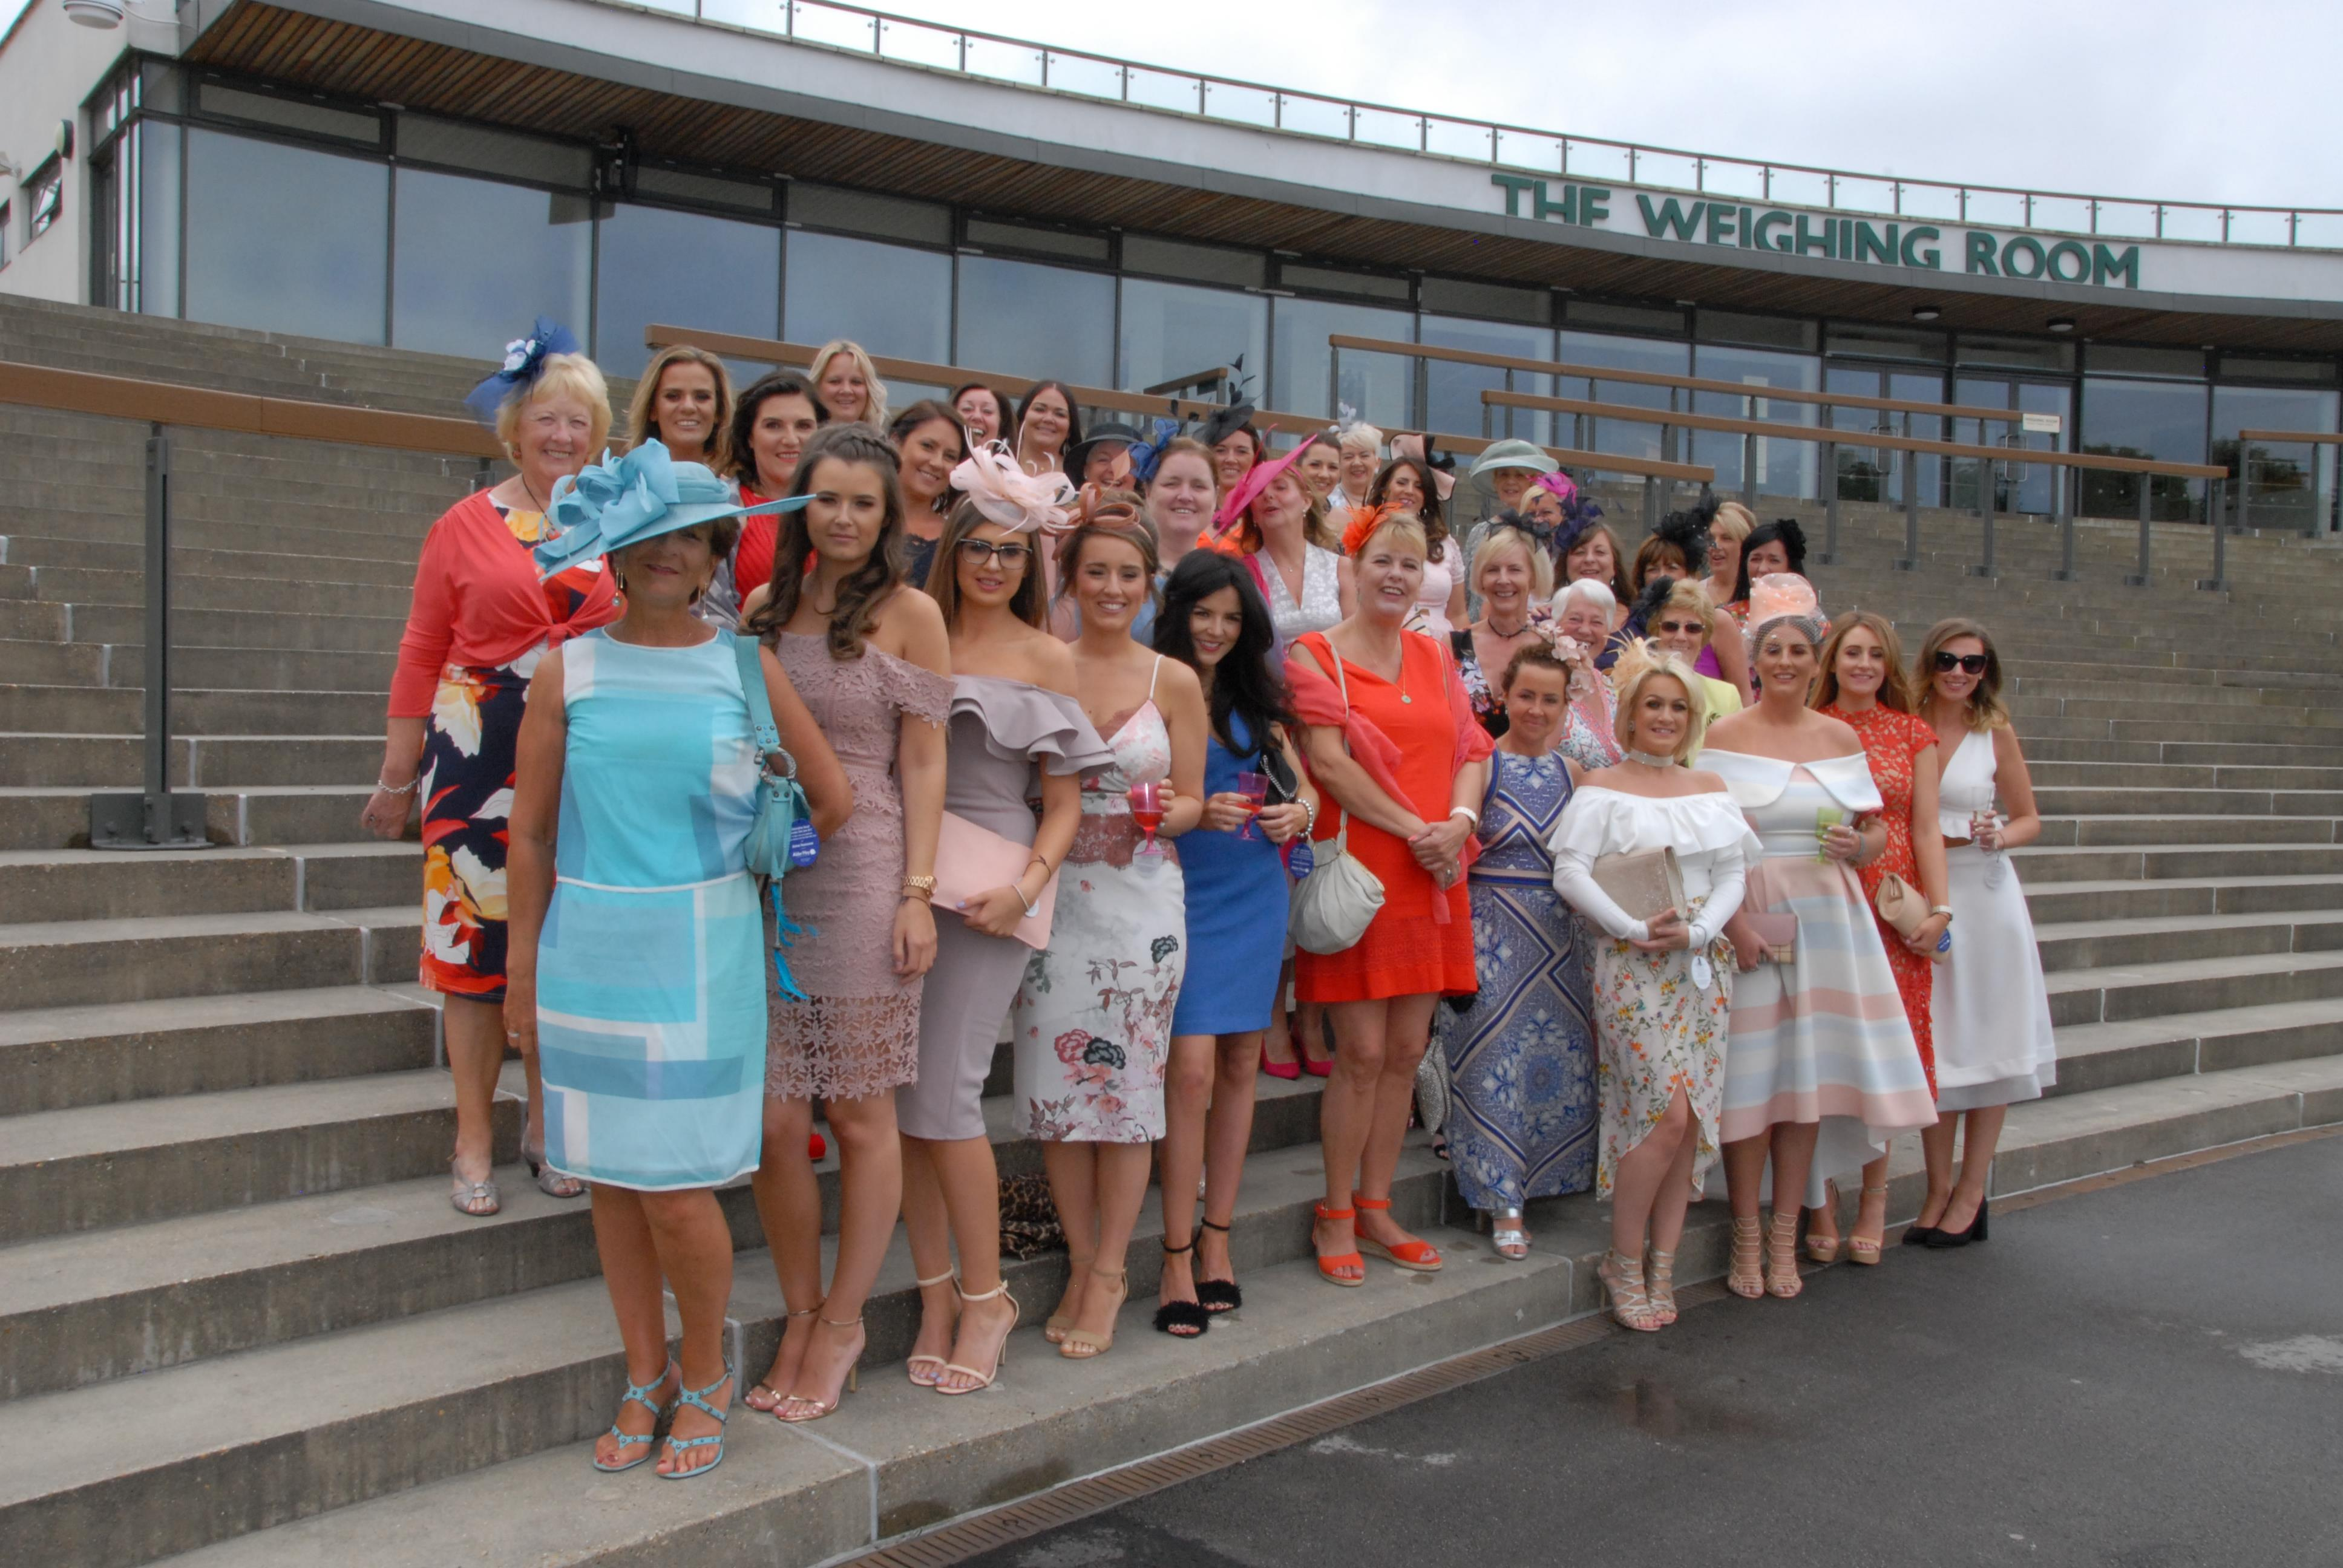 Ladies turn out in style for Alternative Ascot event